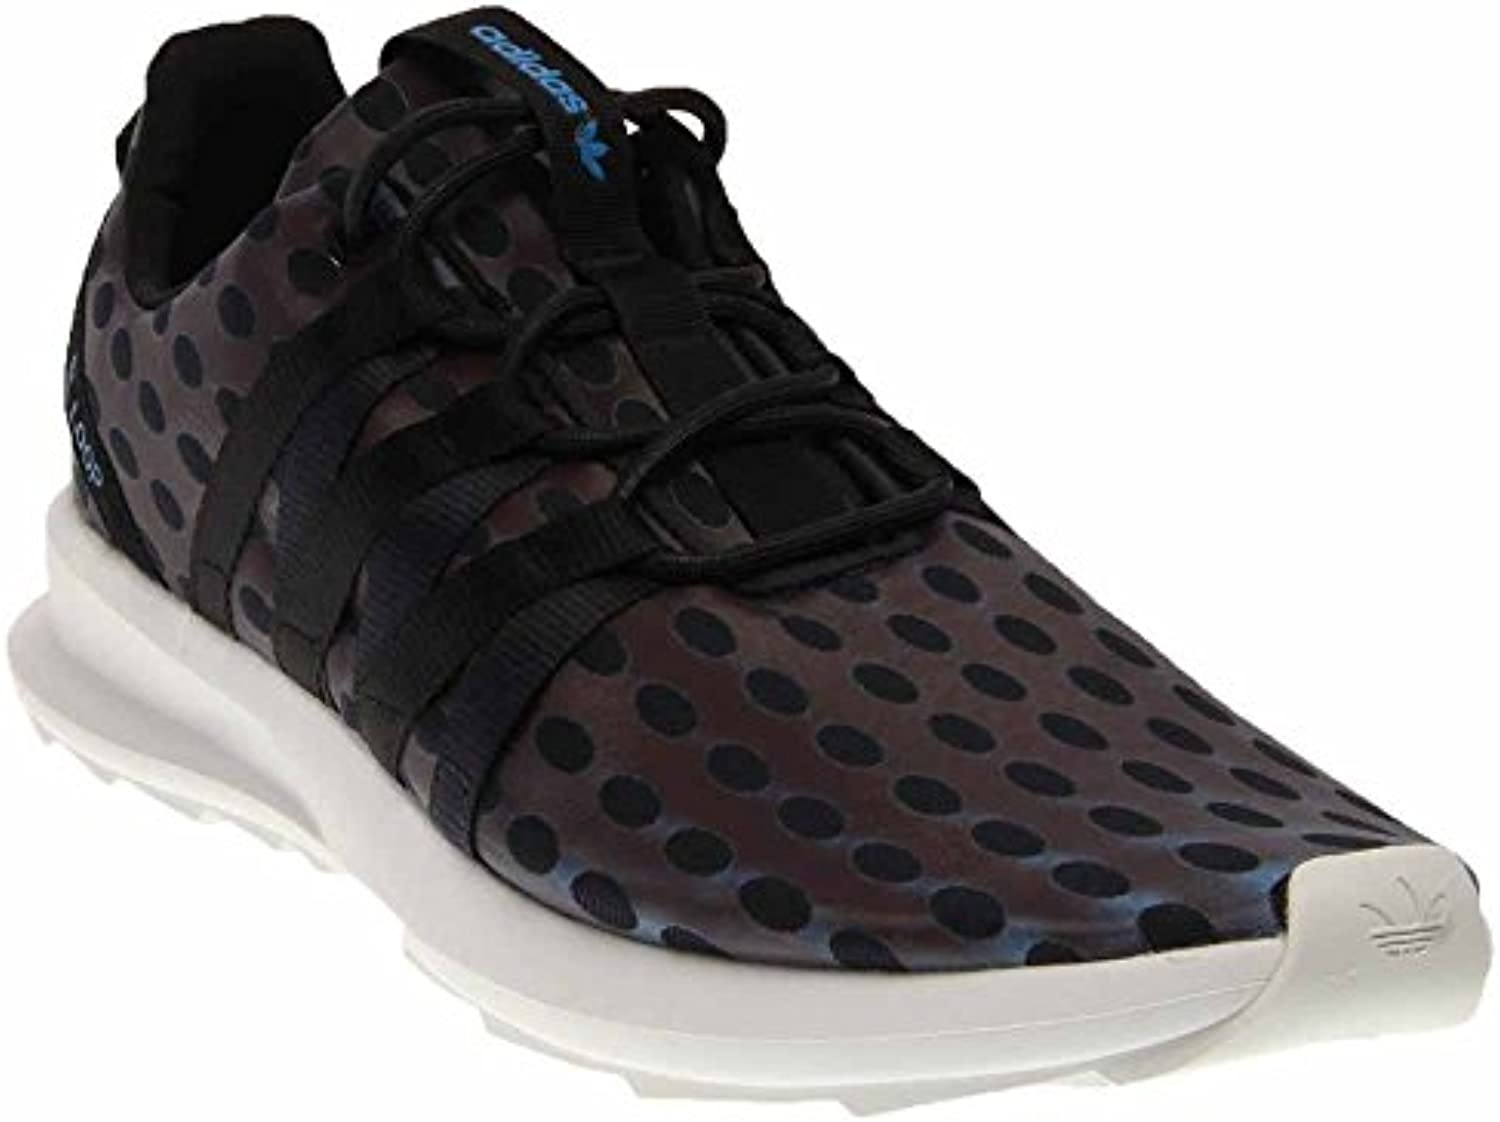 adidas SL Loop CT Herren Synthetik Turnschuhe -